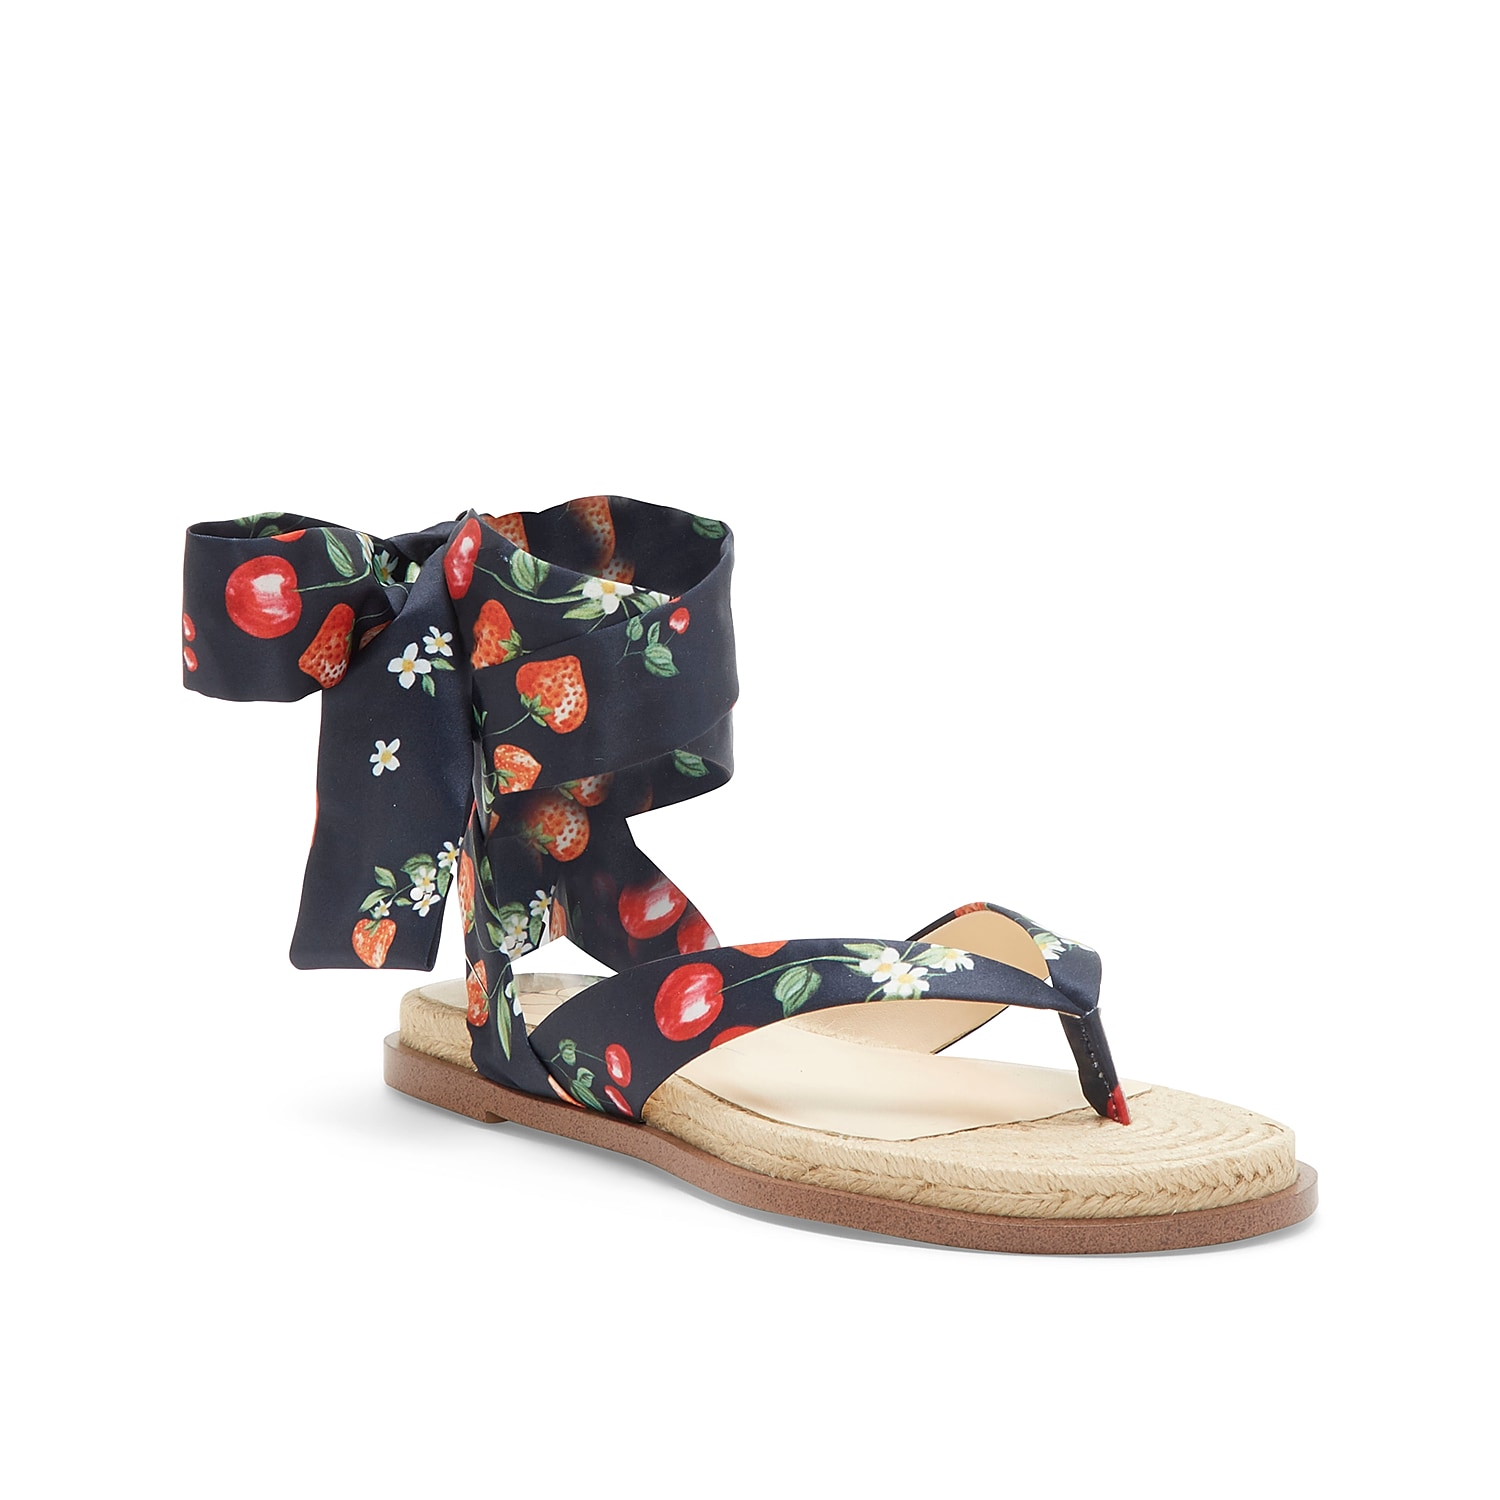 Add a playful look to your warm weather shoe collection with the Abramo sandal from Jessica Simpson. This silhouette is fashioned with a fun print and wrap-up ankle strap for all the style points!